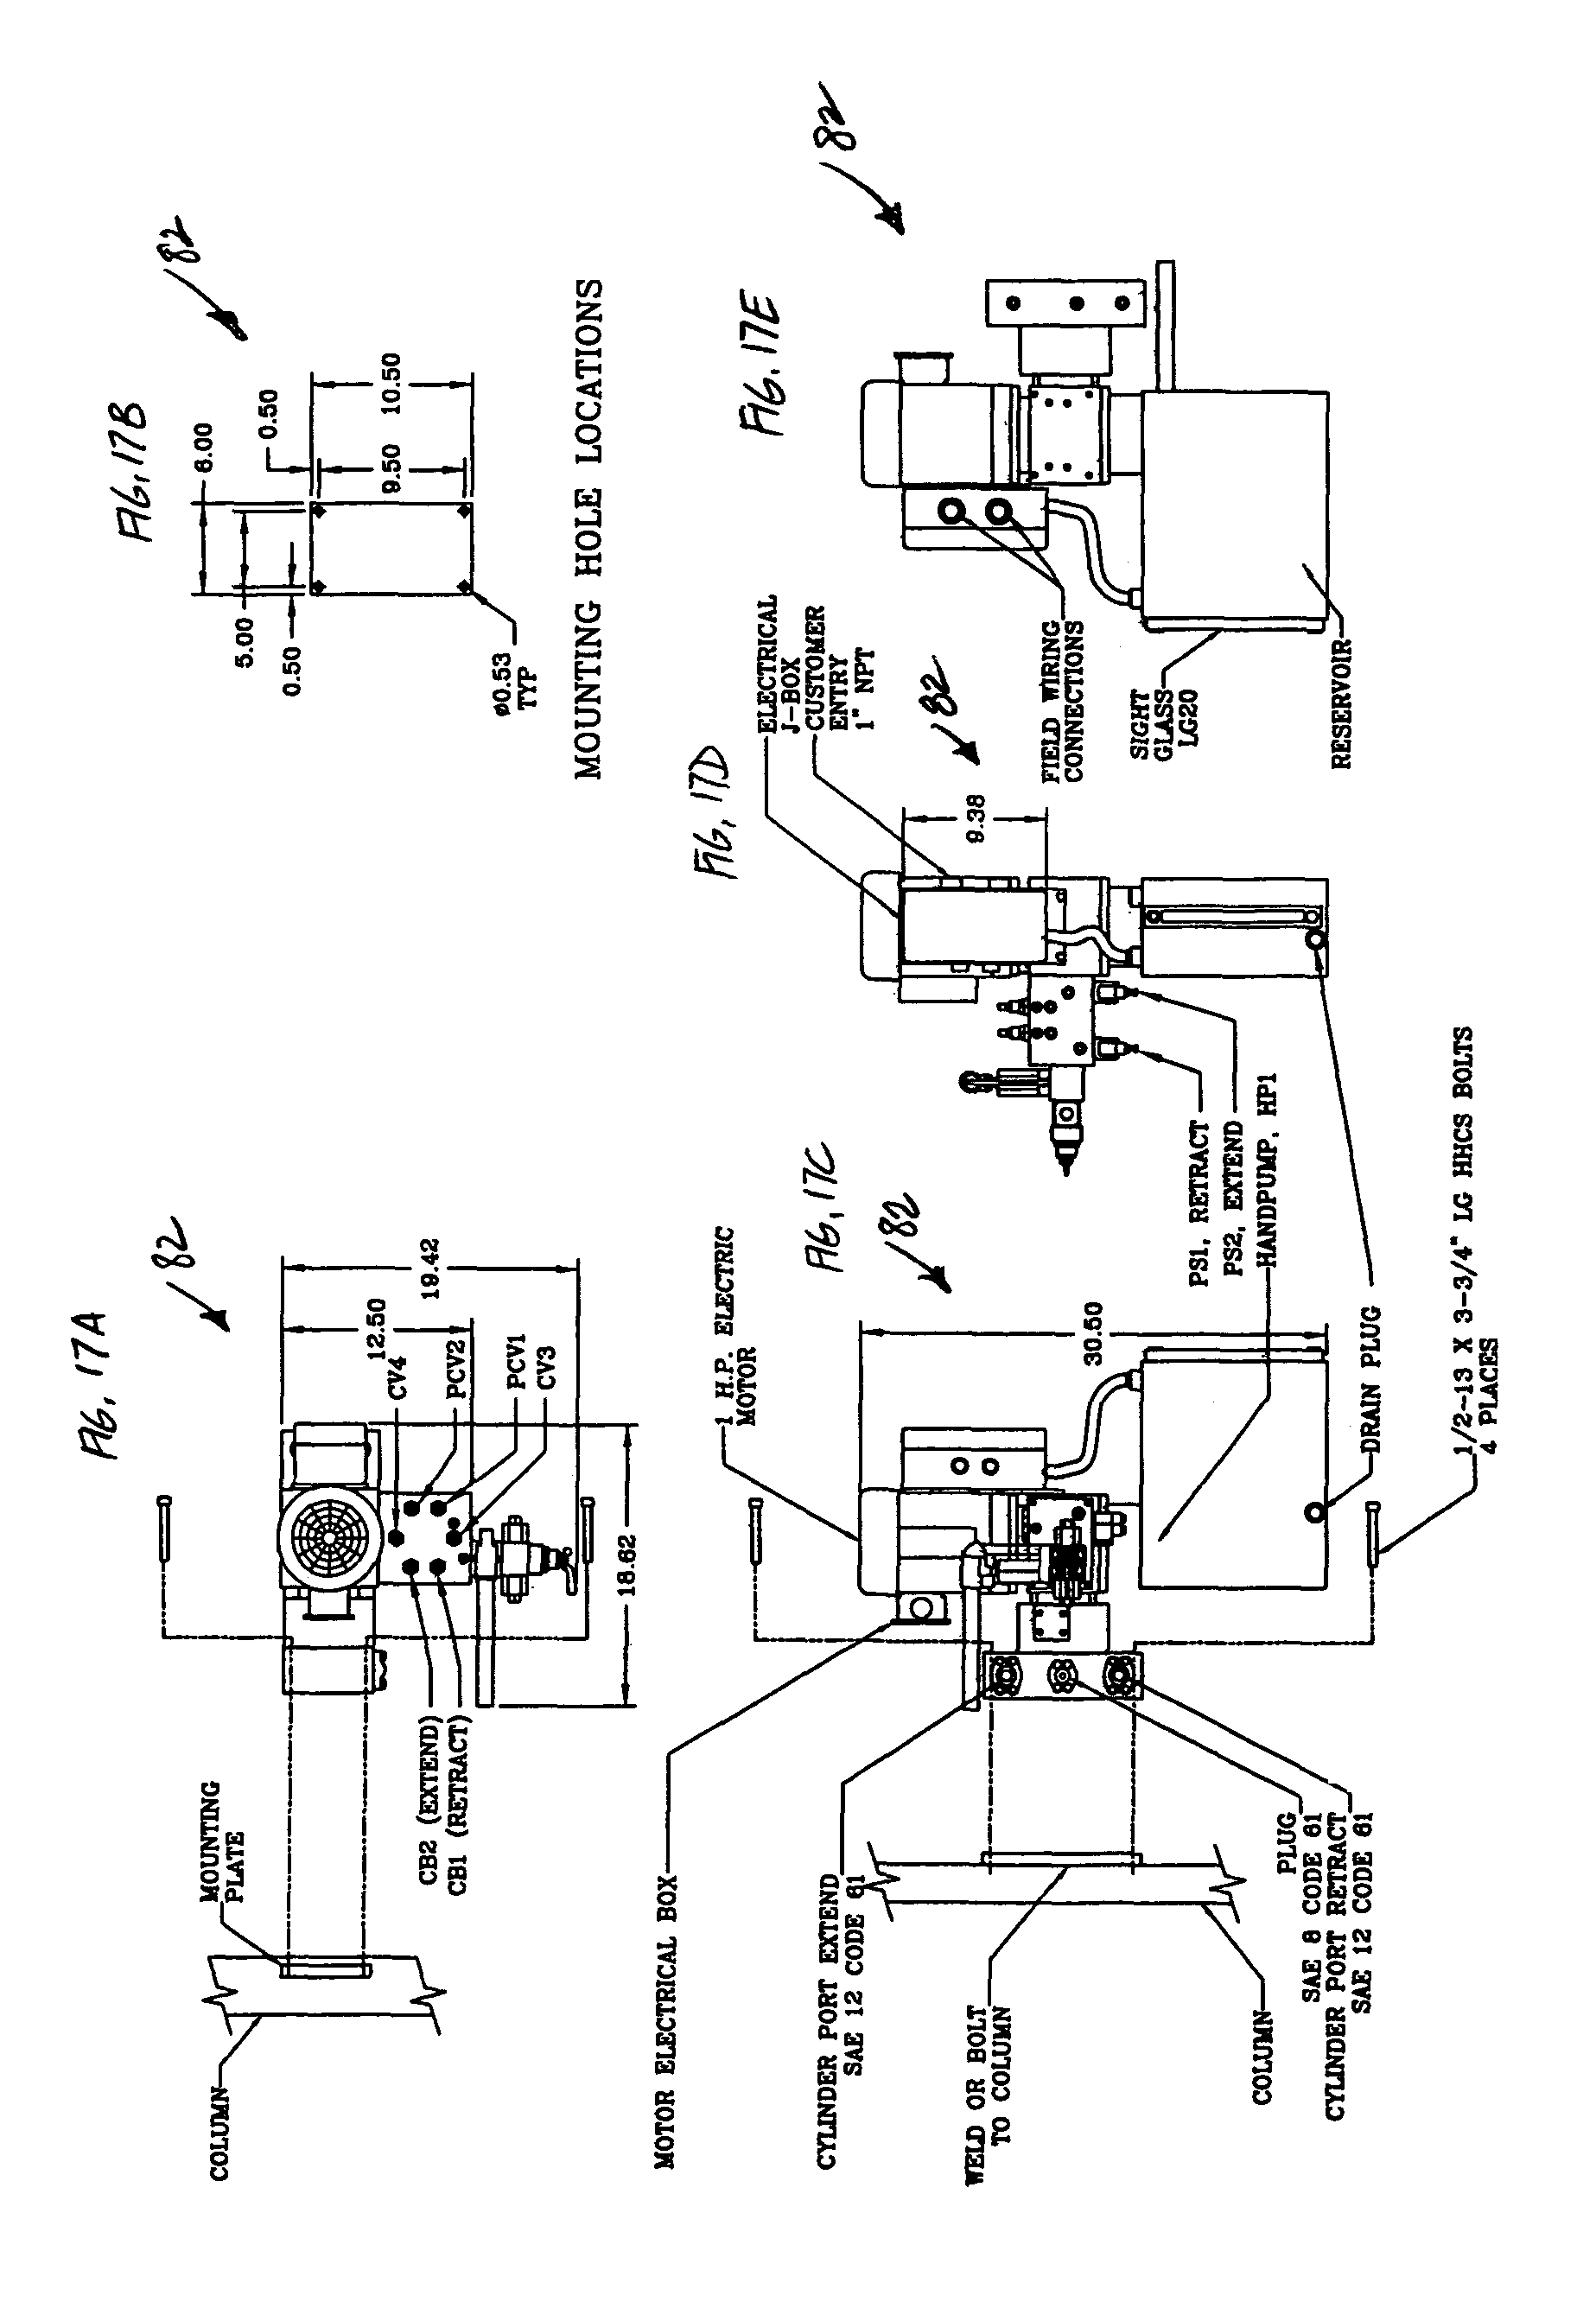 US07980636 20110719 D00019 patent us7980636 automated gate control and methods google patents wiring diagram for automatic gate lock fm143 at gsmx.co